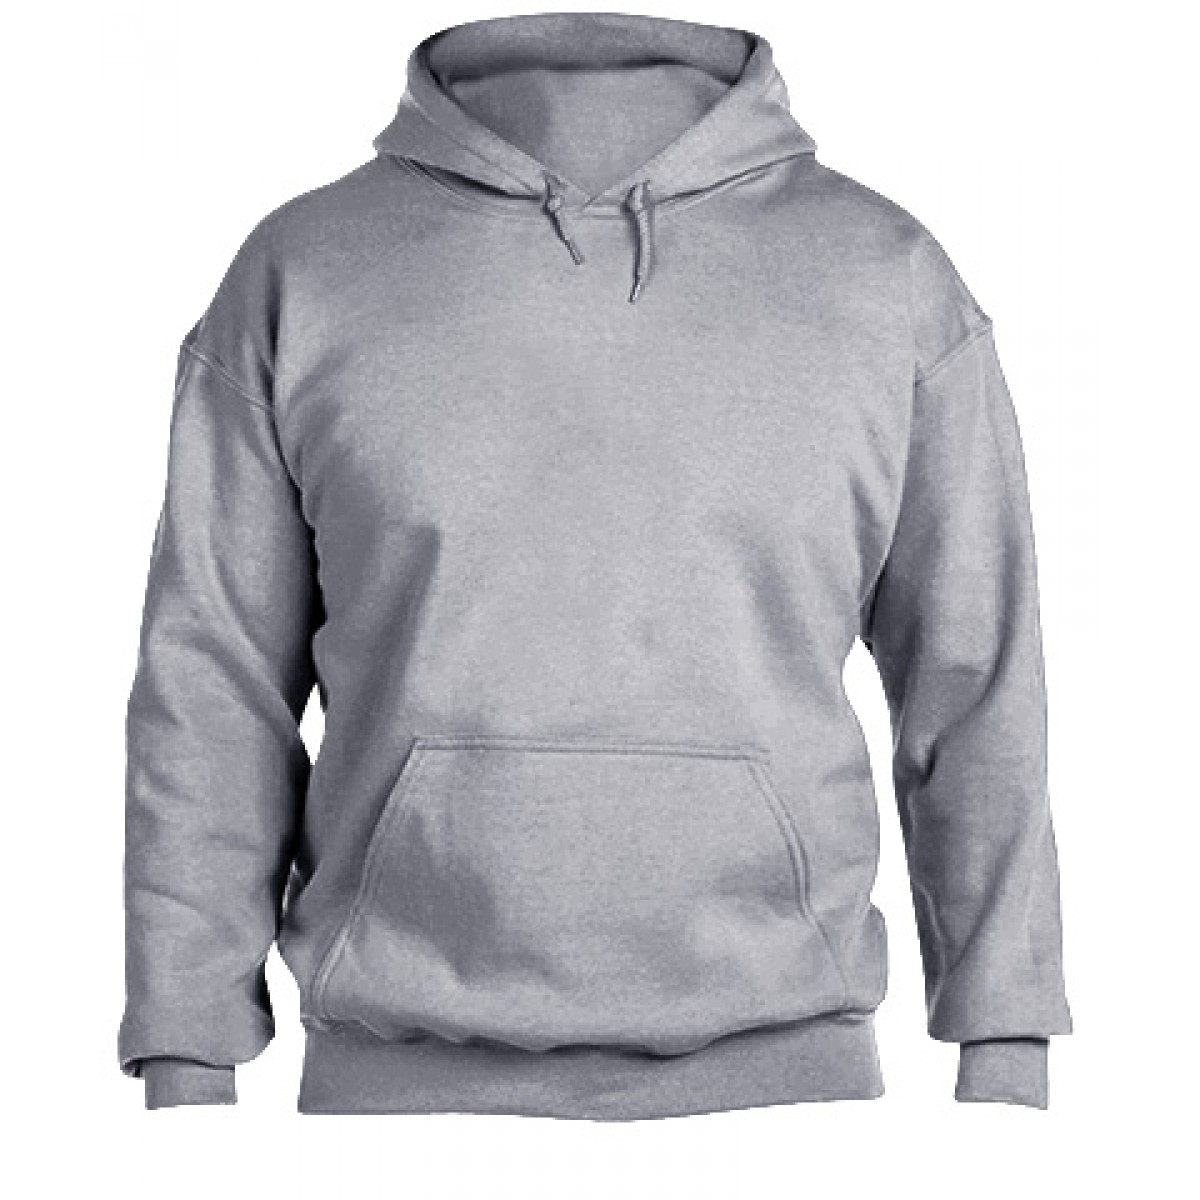 Hooded Sweatshirt 50/50 Heavy Blend -Gray-S